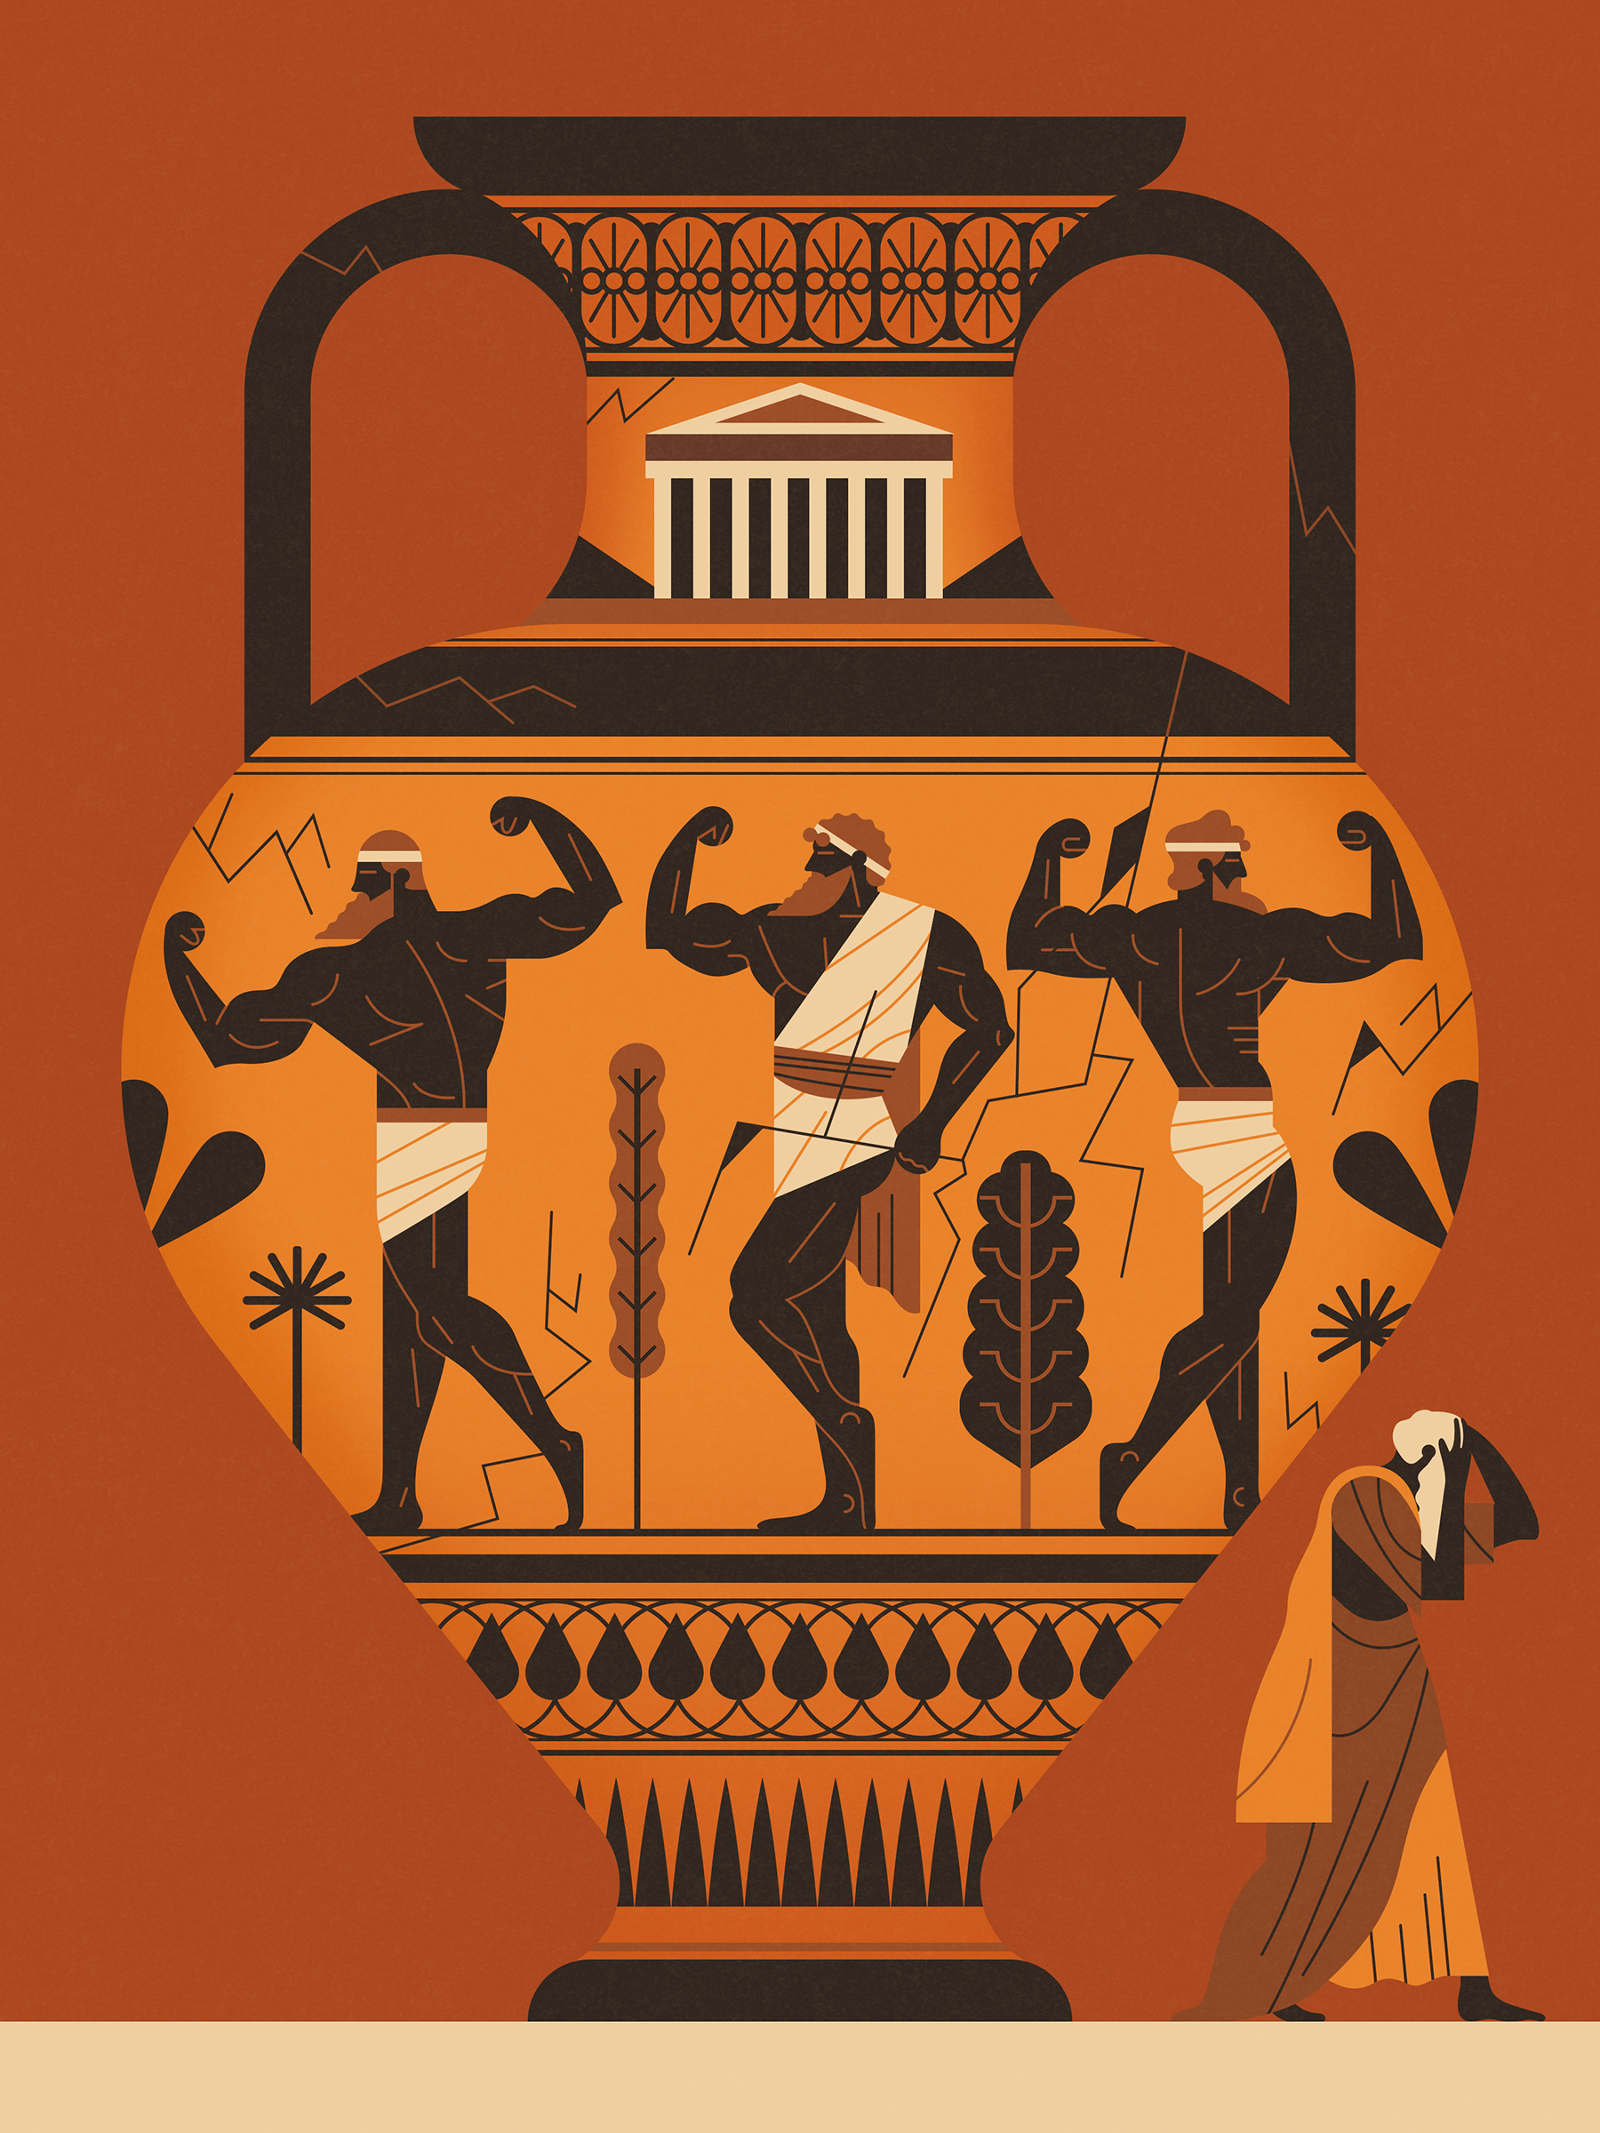 Making-Athens-Great-Again-Greece-United-States-America-Socrates-Plato-Ancient-Vase-Greek-Illustration-Editorial-Owen-Davey_1600_c.jpg